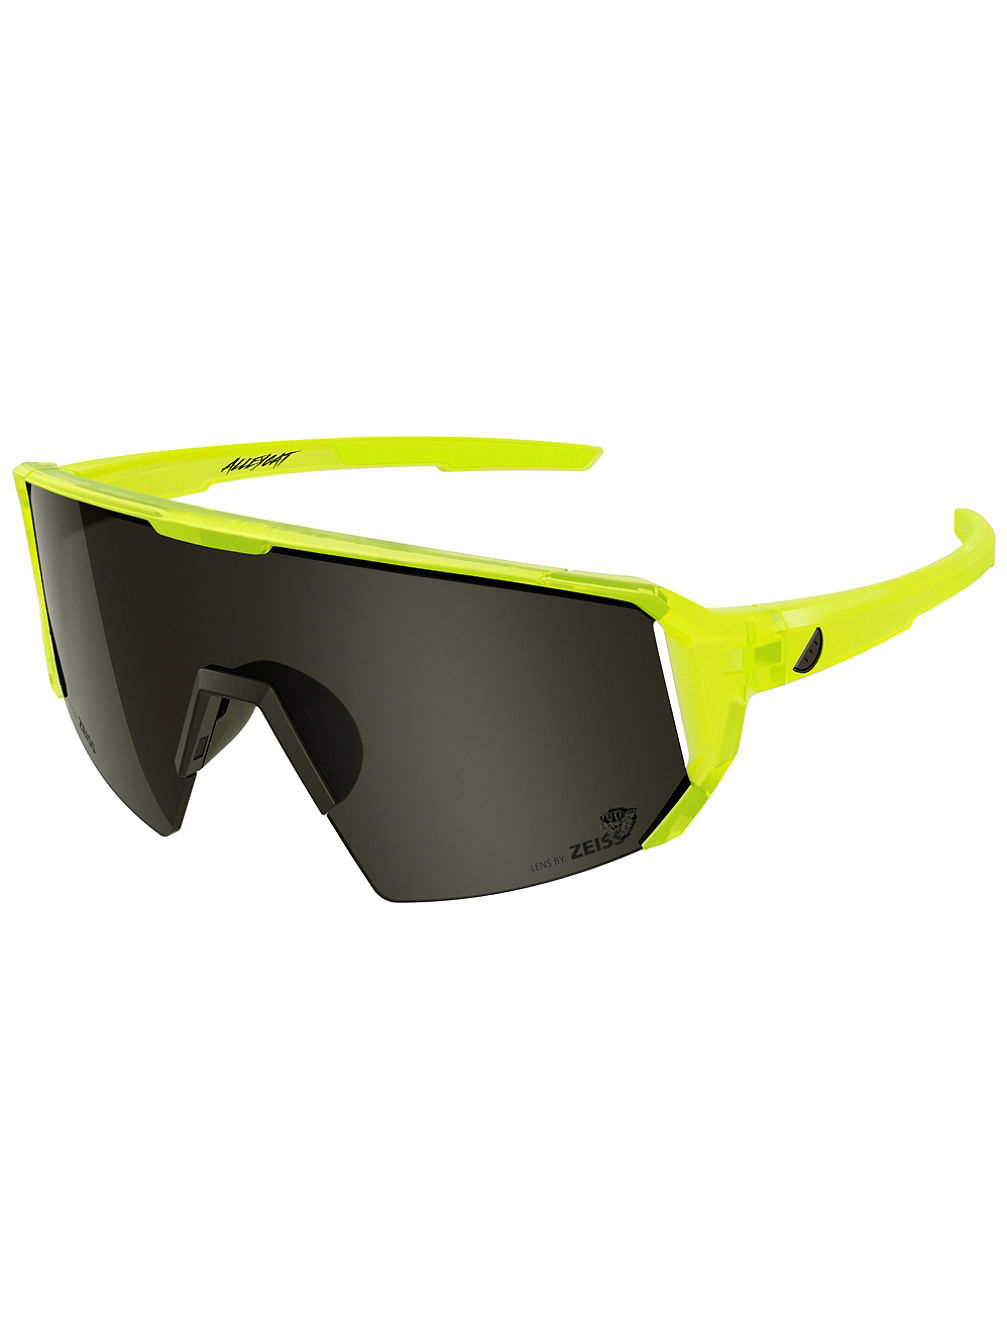 Alleycat Neon Yellow/Black Highlights